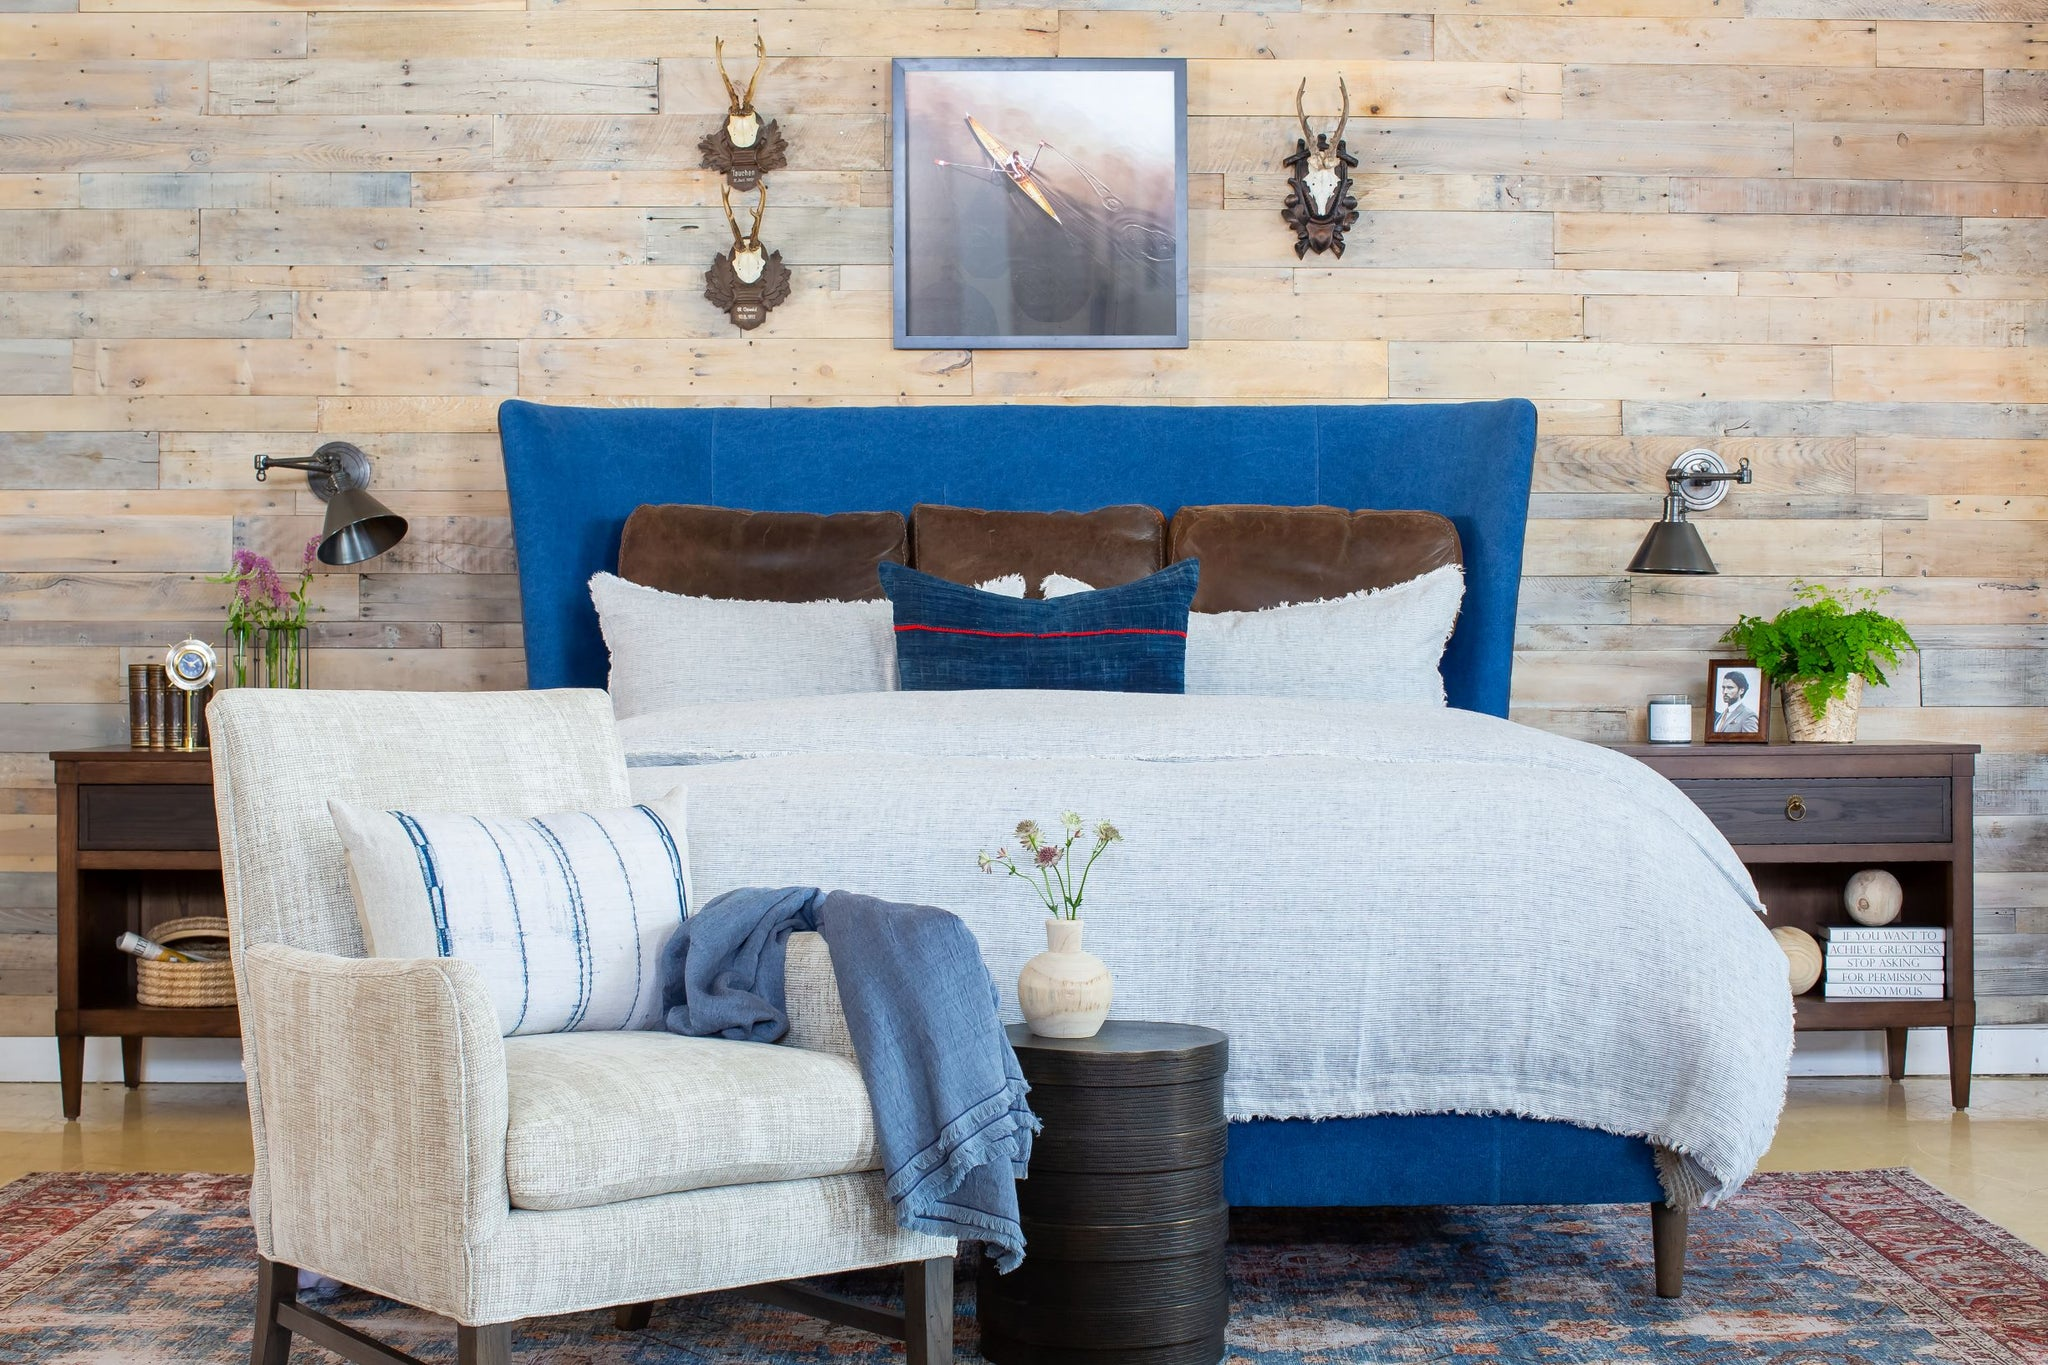 Franklin Upholstered Bed in Blue Fabric with Leather Welt Styled in Bedroom